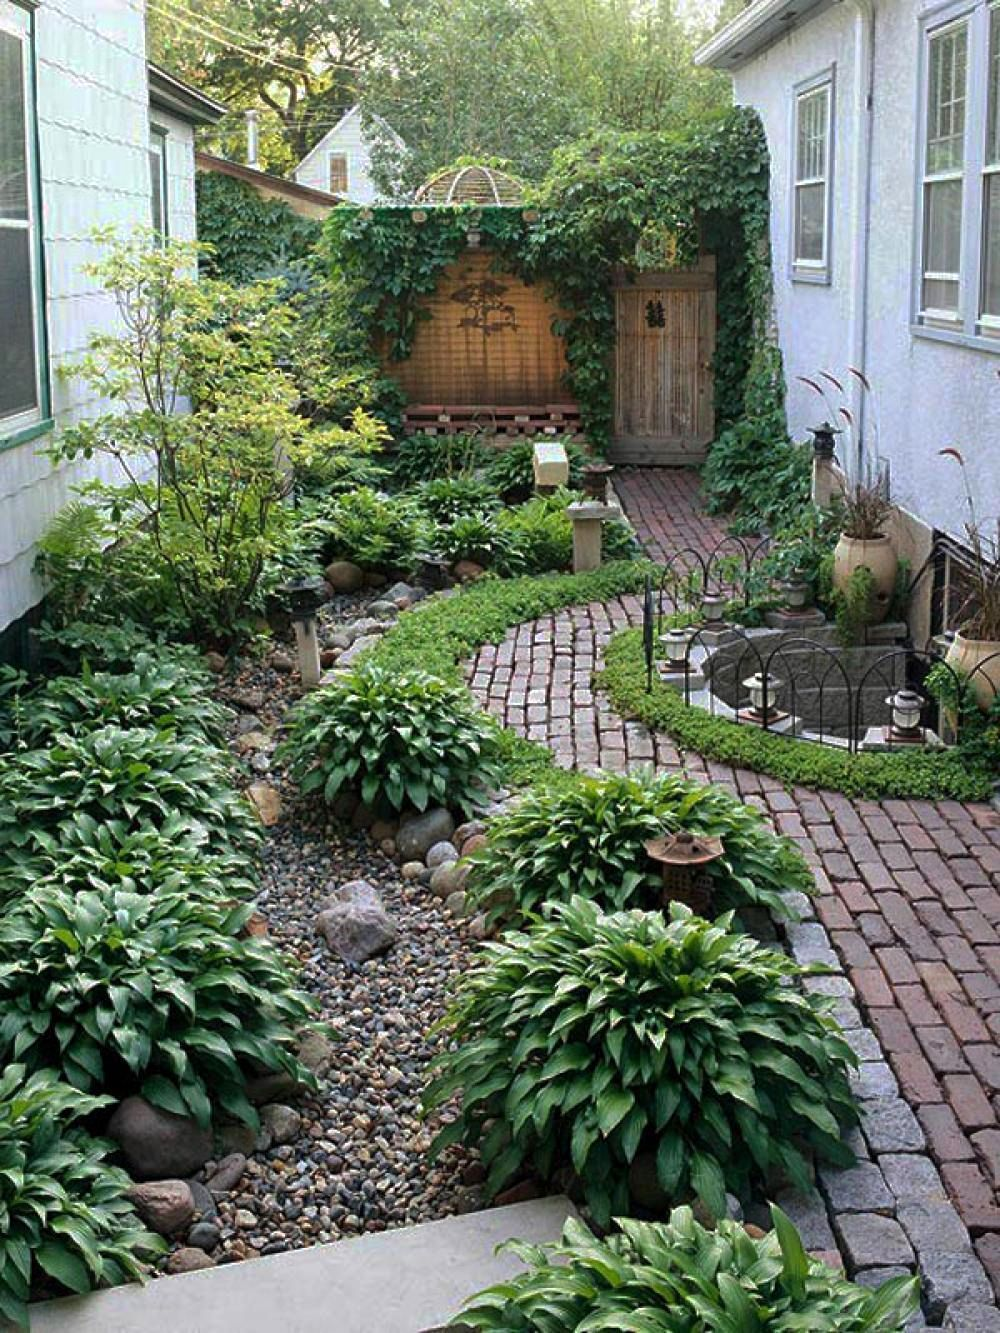 Beautiful Garden And Patio Narrow Side Yard House  Design With Simple Landscaping Ideas And Garden No Grass With Trees And Herb Plants Beside Brick Walkway And Small   ...